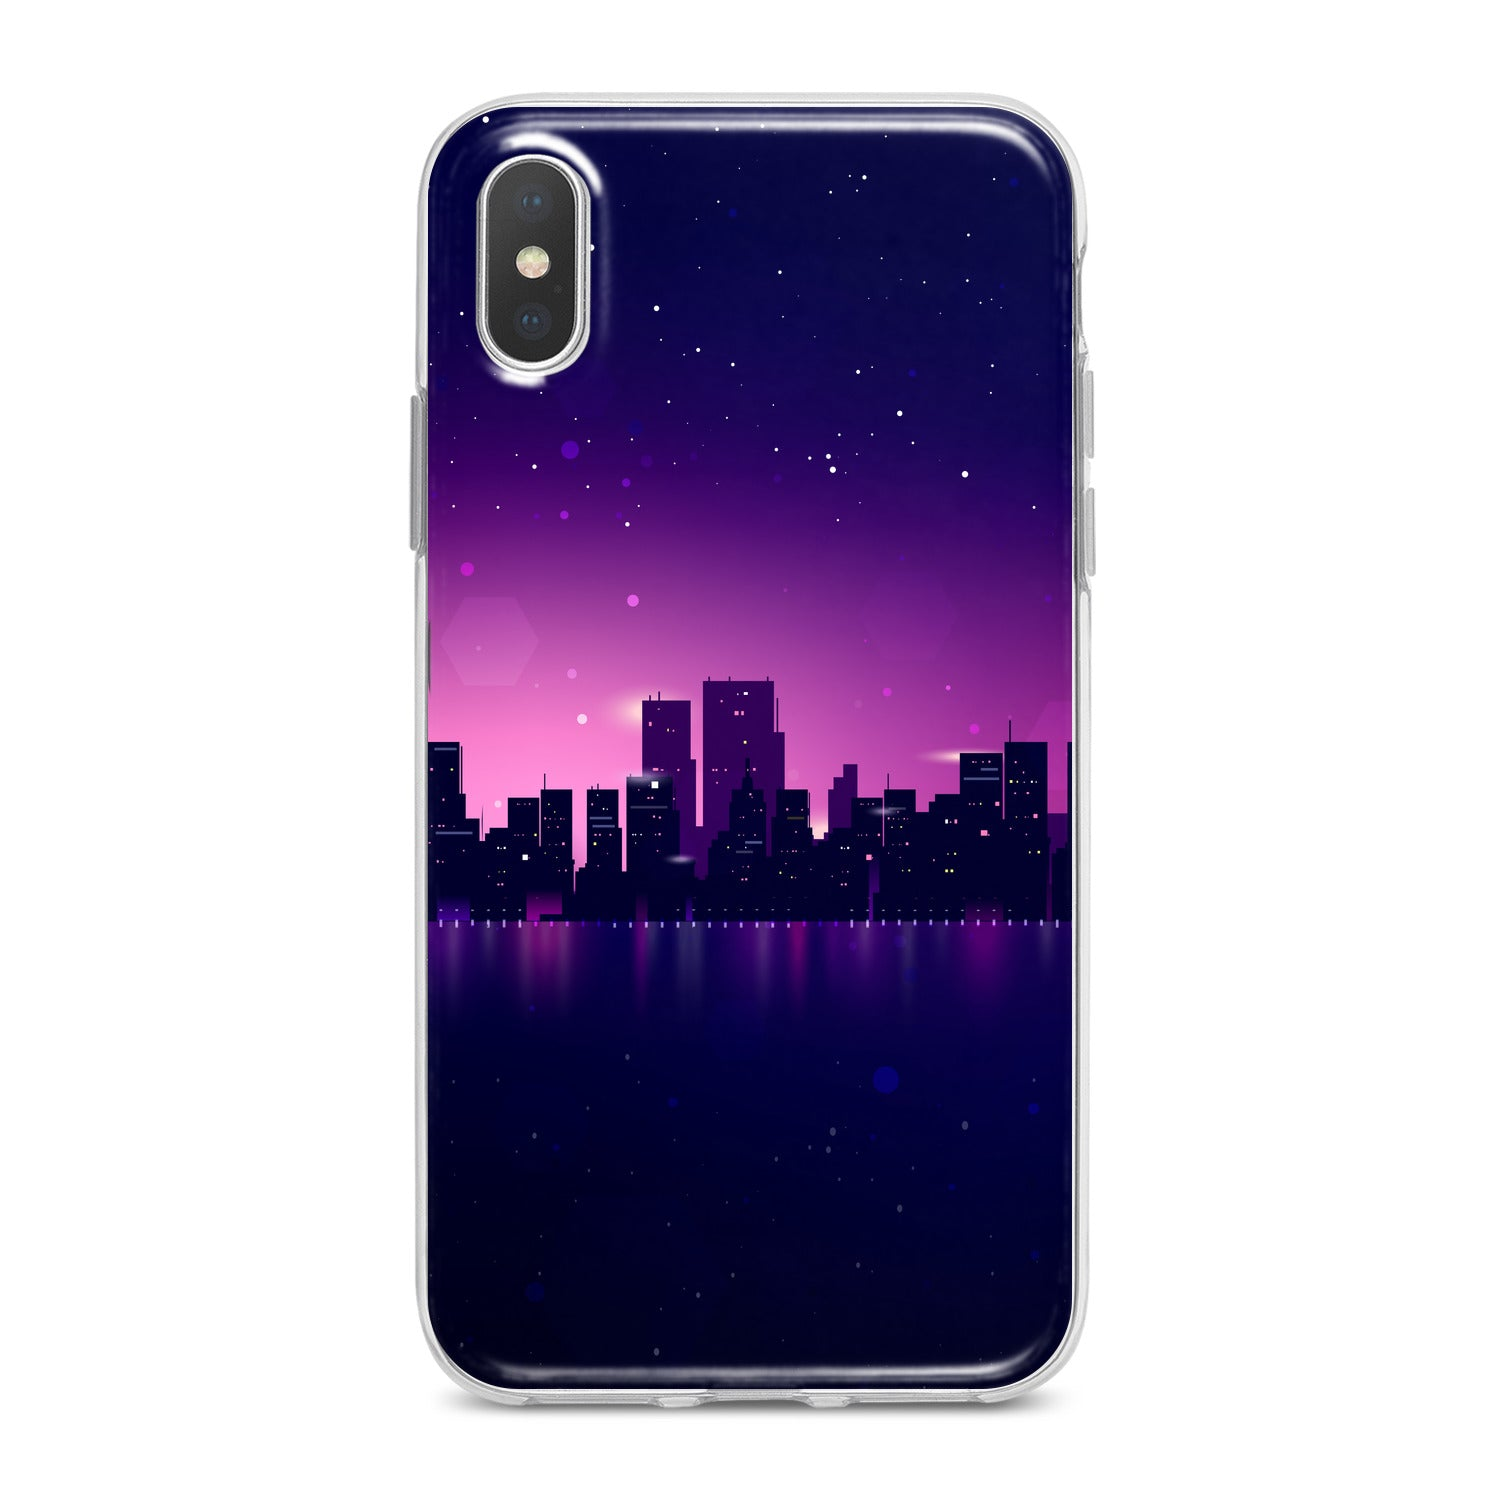 Lex Altern Purple Urban View Phone Case for your iPhone & Android phone.